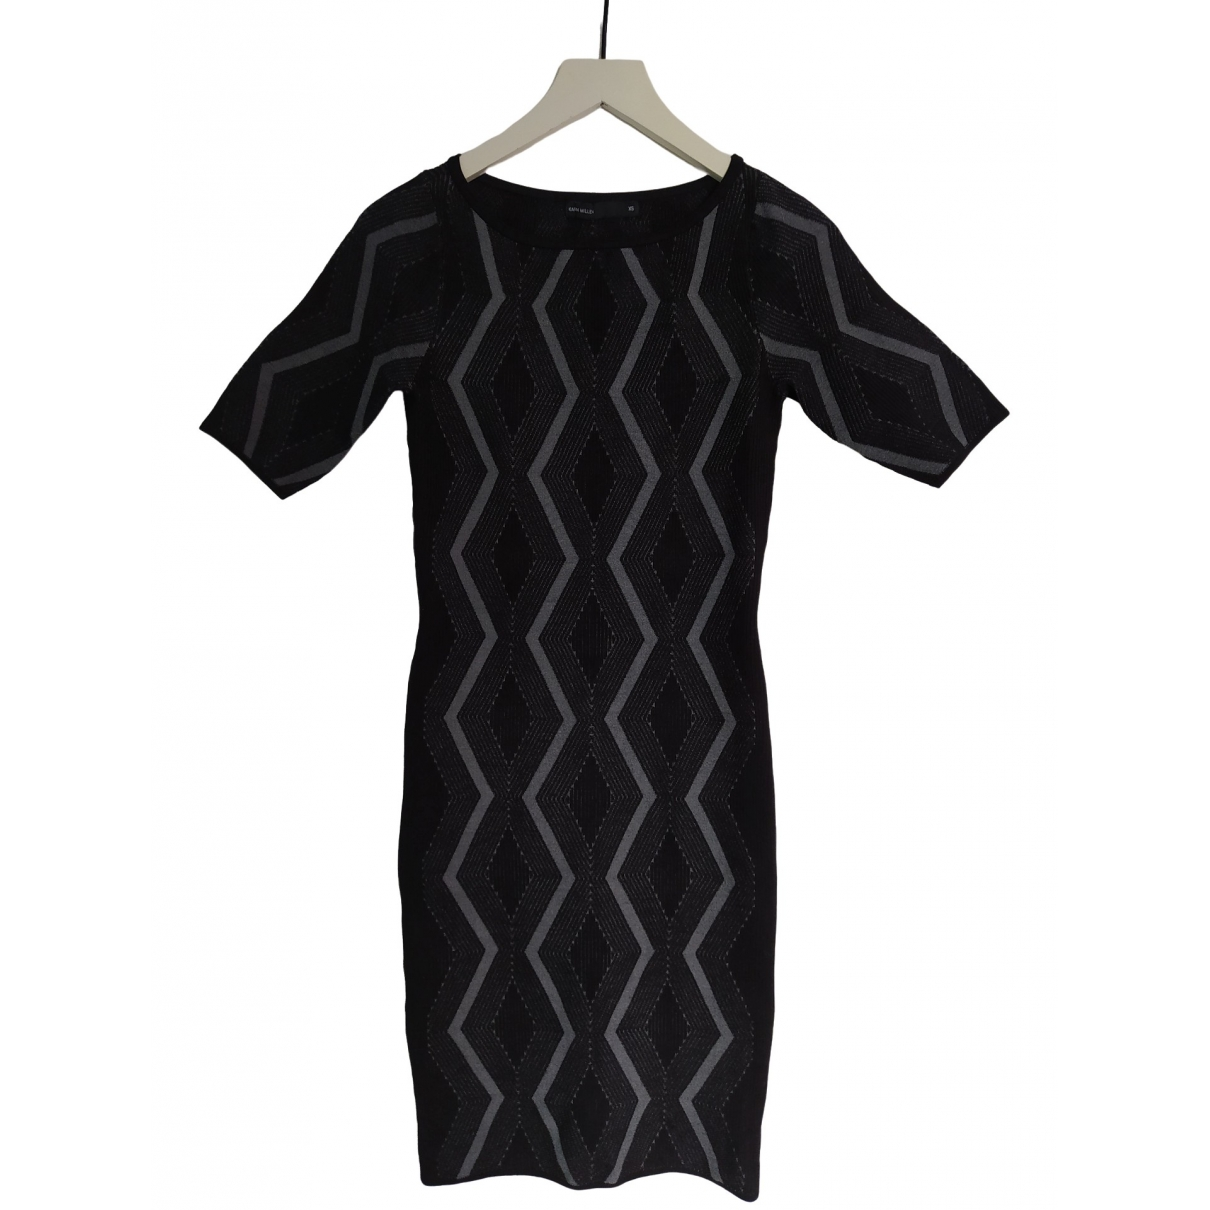 Karen Millen \N Black dress for Women 34 FR